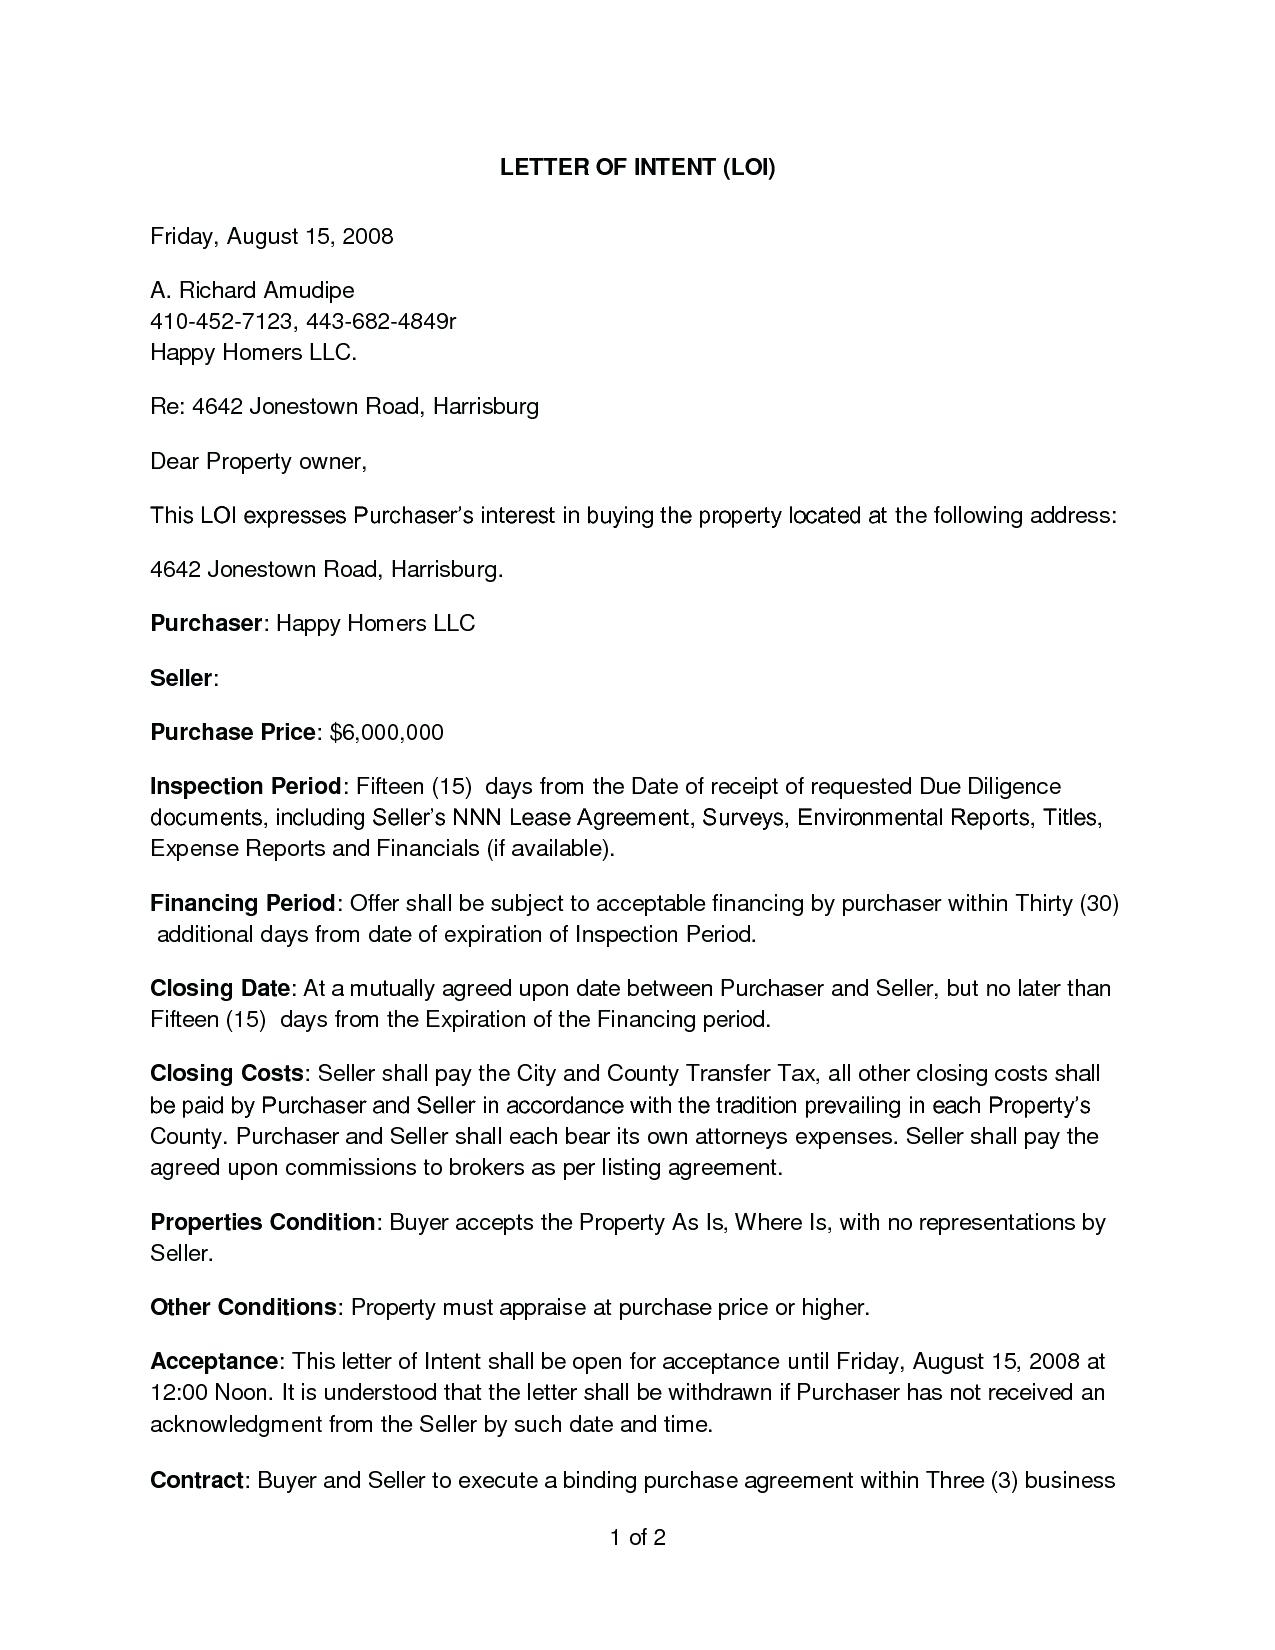 Letter of intent to lease template collection letter templates letter of intent to lease template tenant fero lease mercial property youtube letter spiritdancerdesigns Image collections